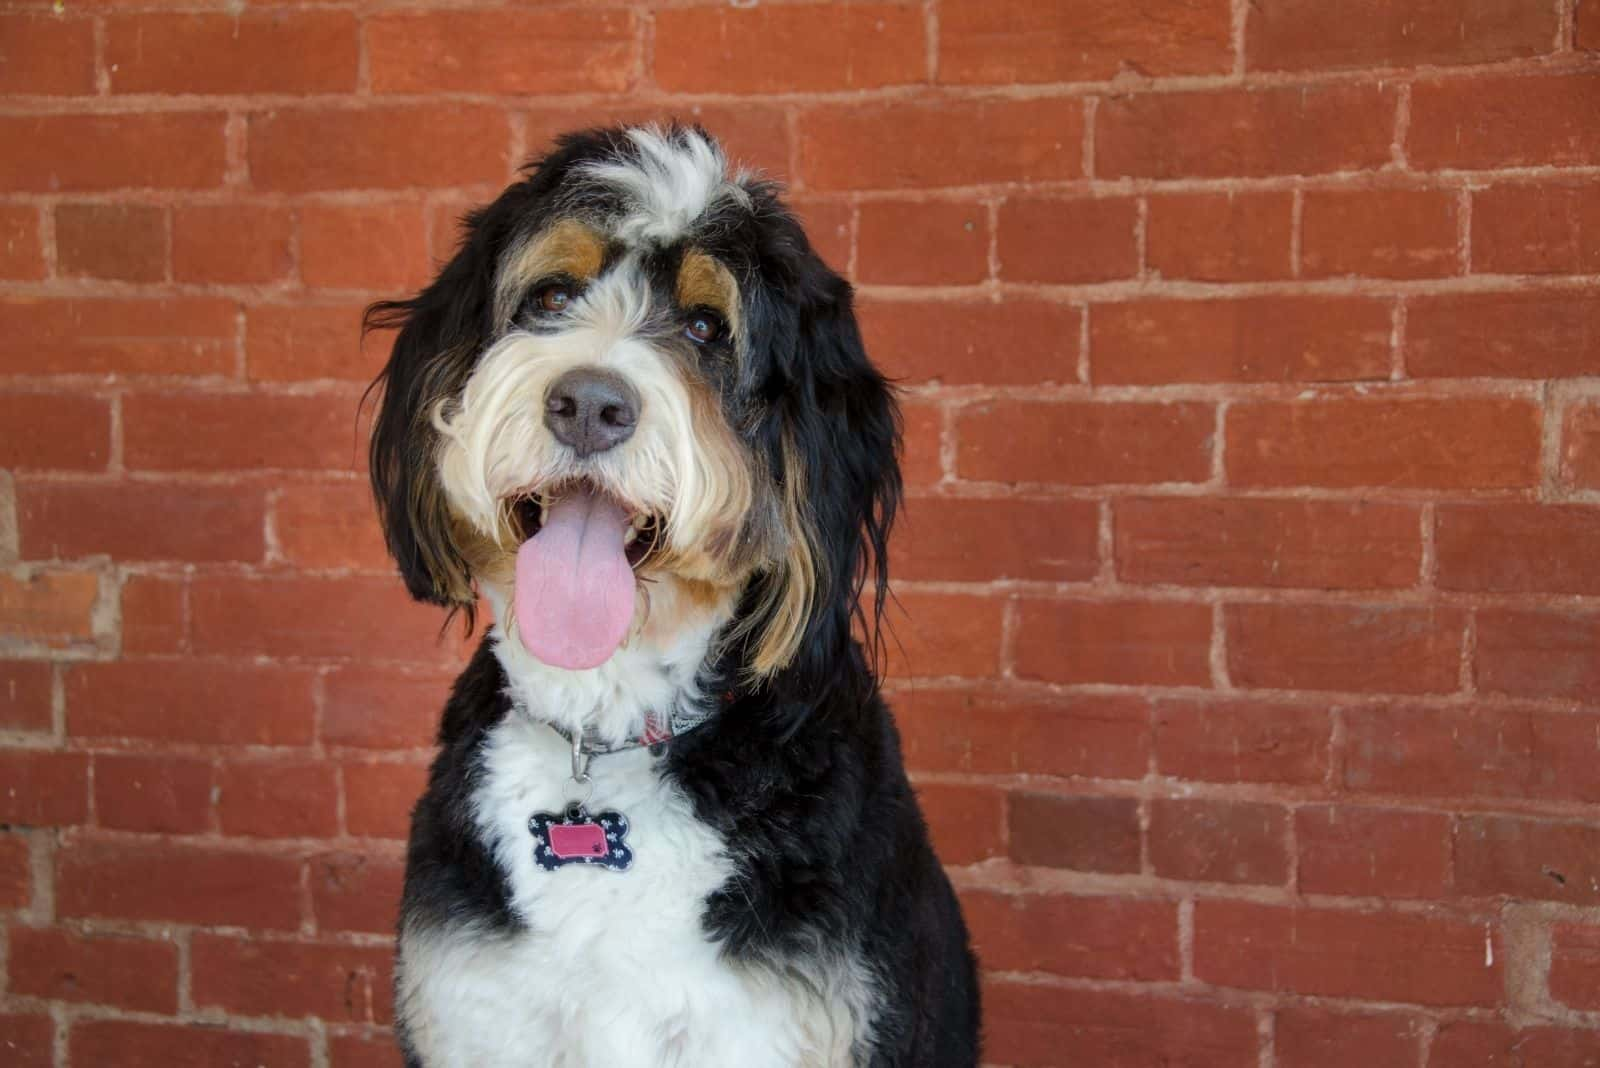 standard bernedoodle sitting near the bricked wall